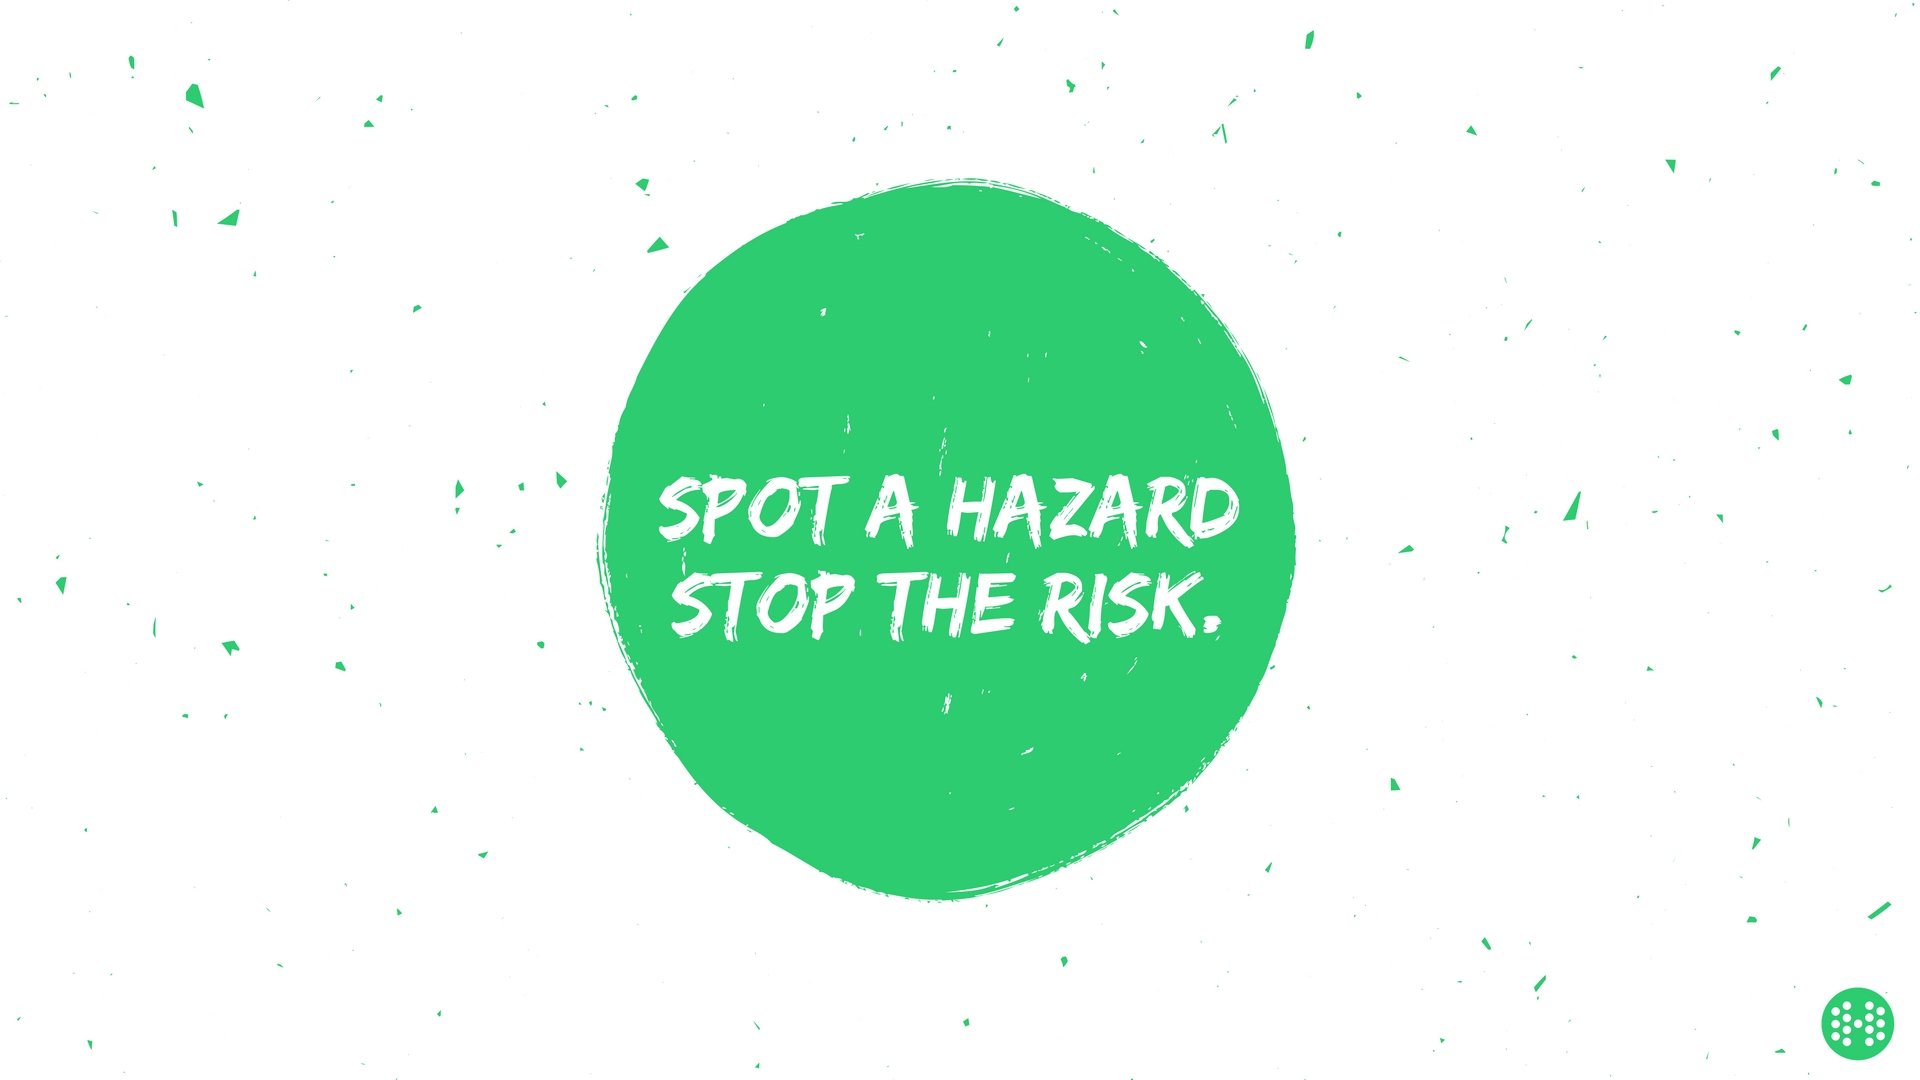 hazard spot health safety wallpaper